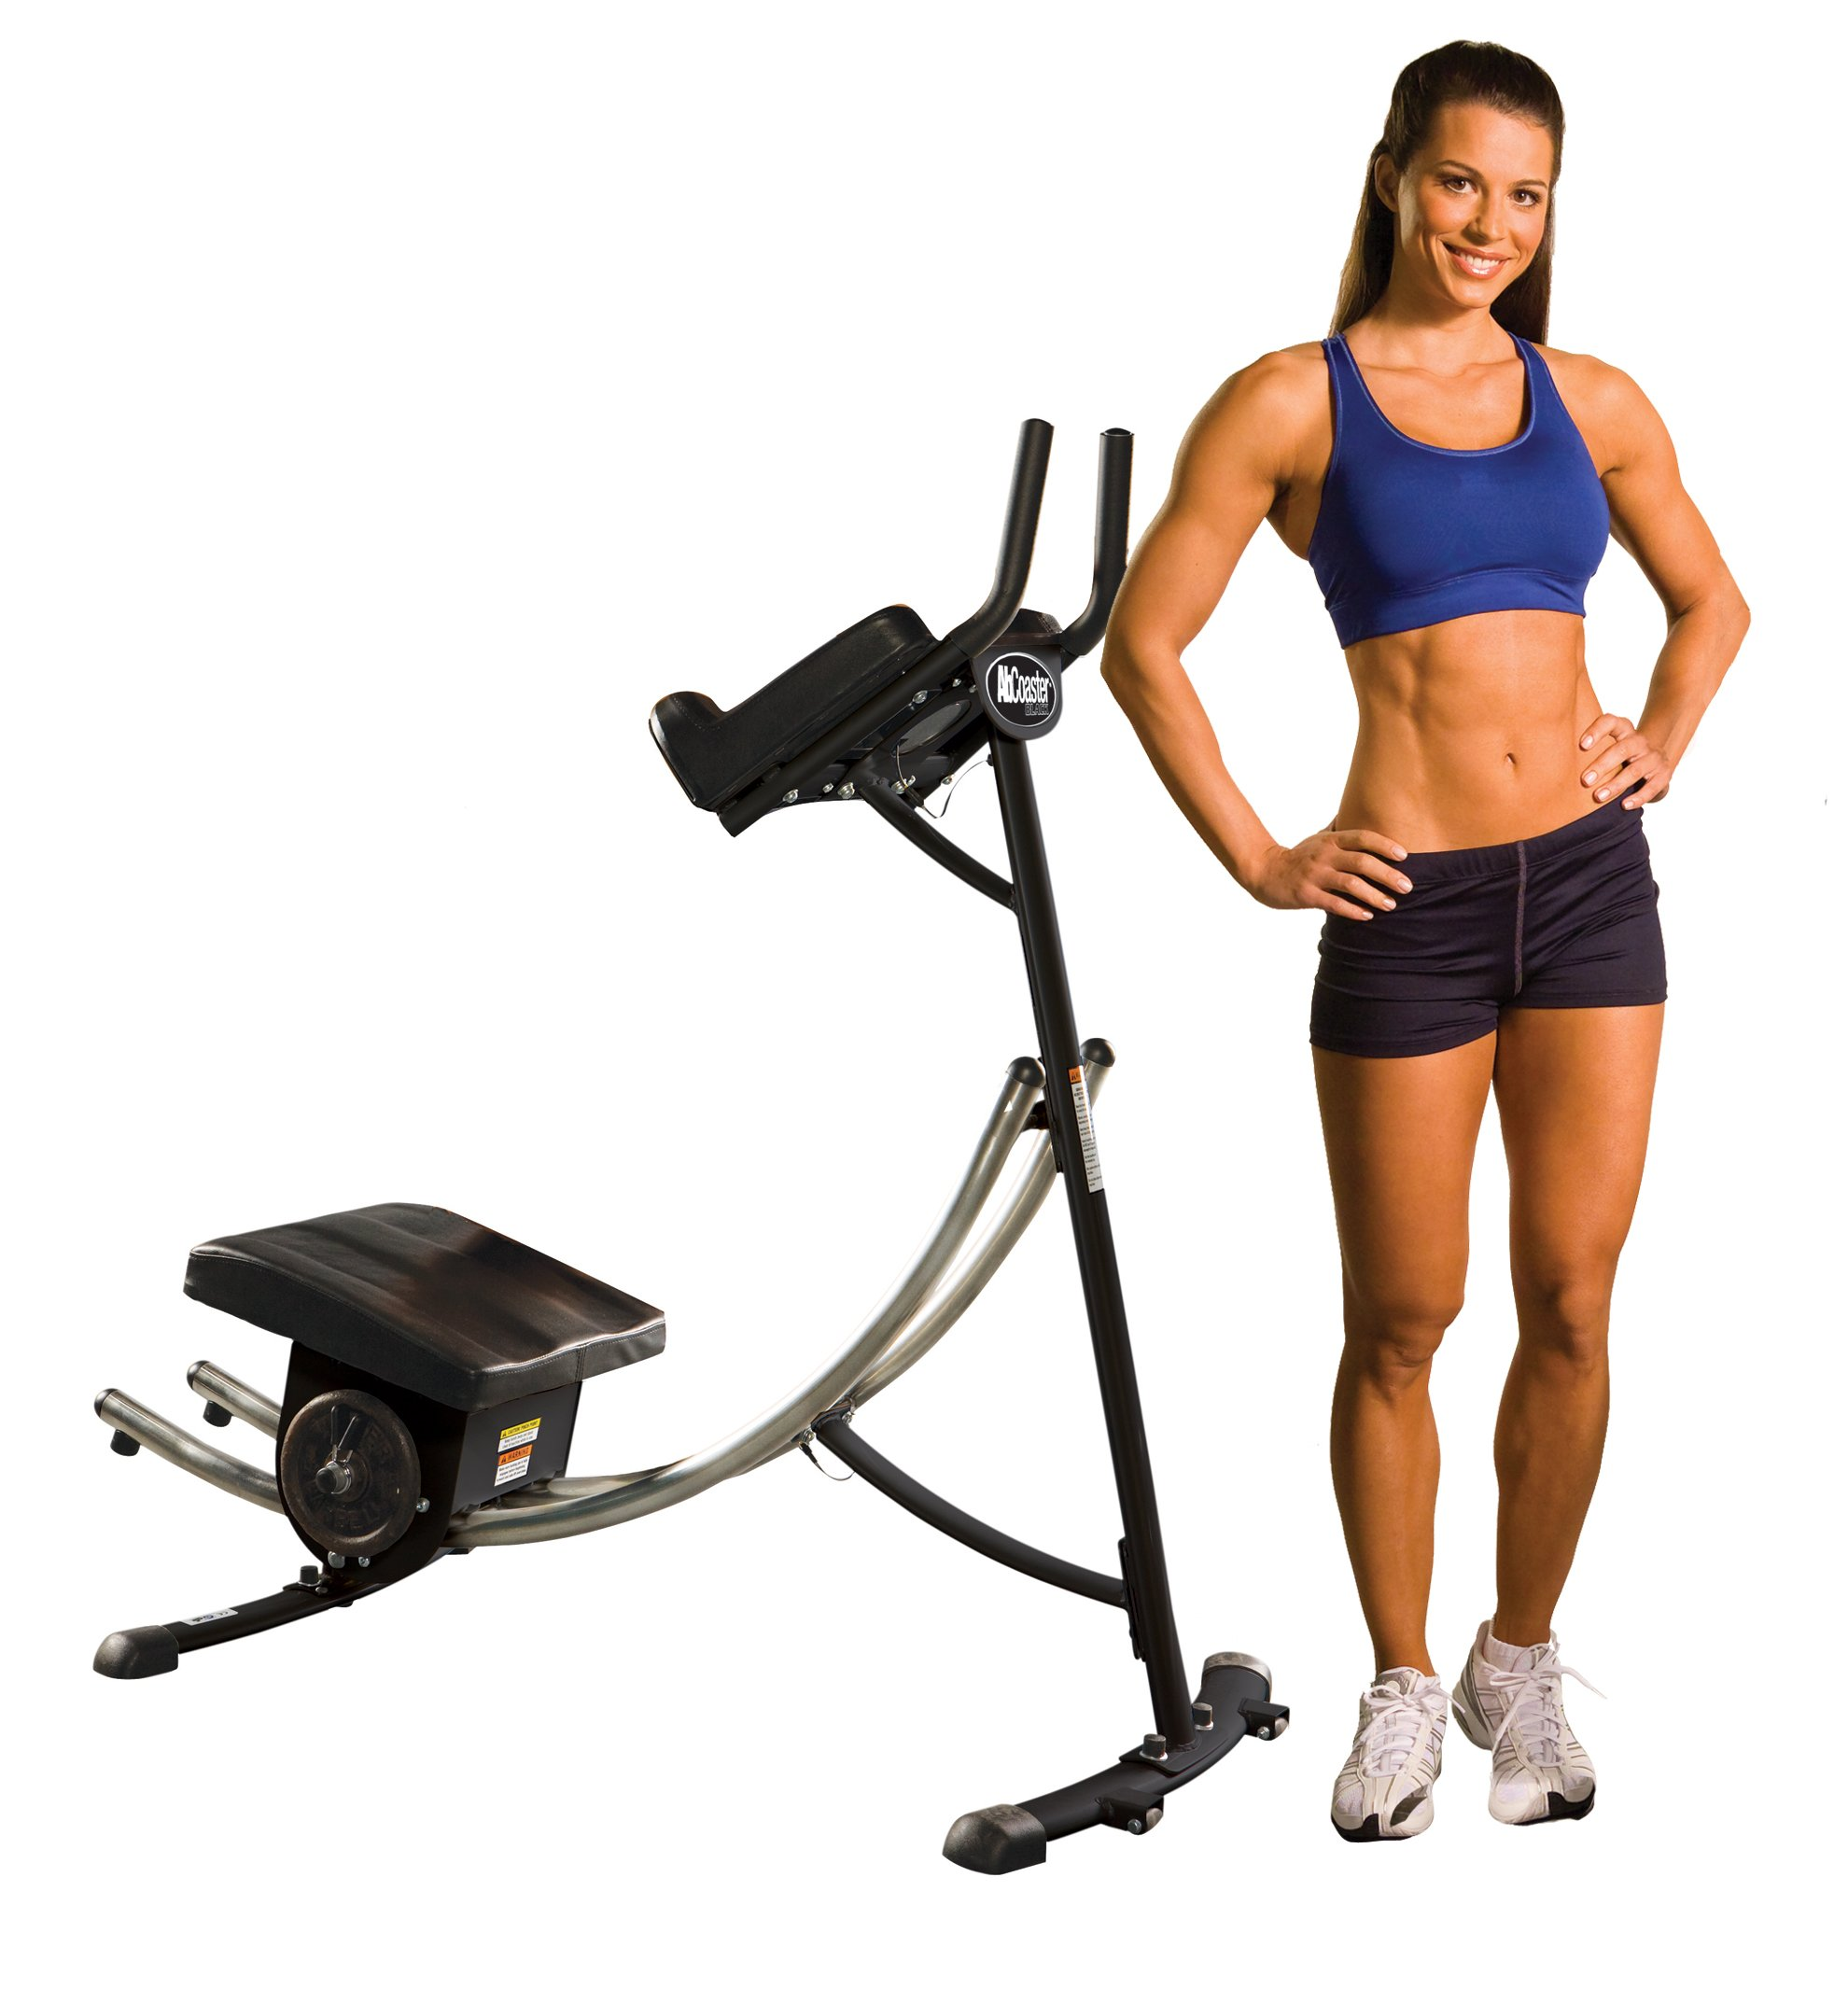 Ab Coaster Black, Ultimate Ab Workout, Six Pack Exercise Machine For Home As Seen On TV by Ab Coaster